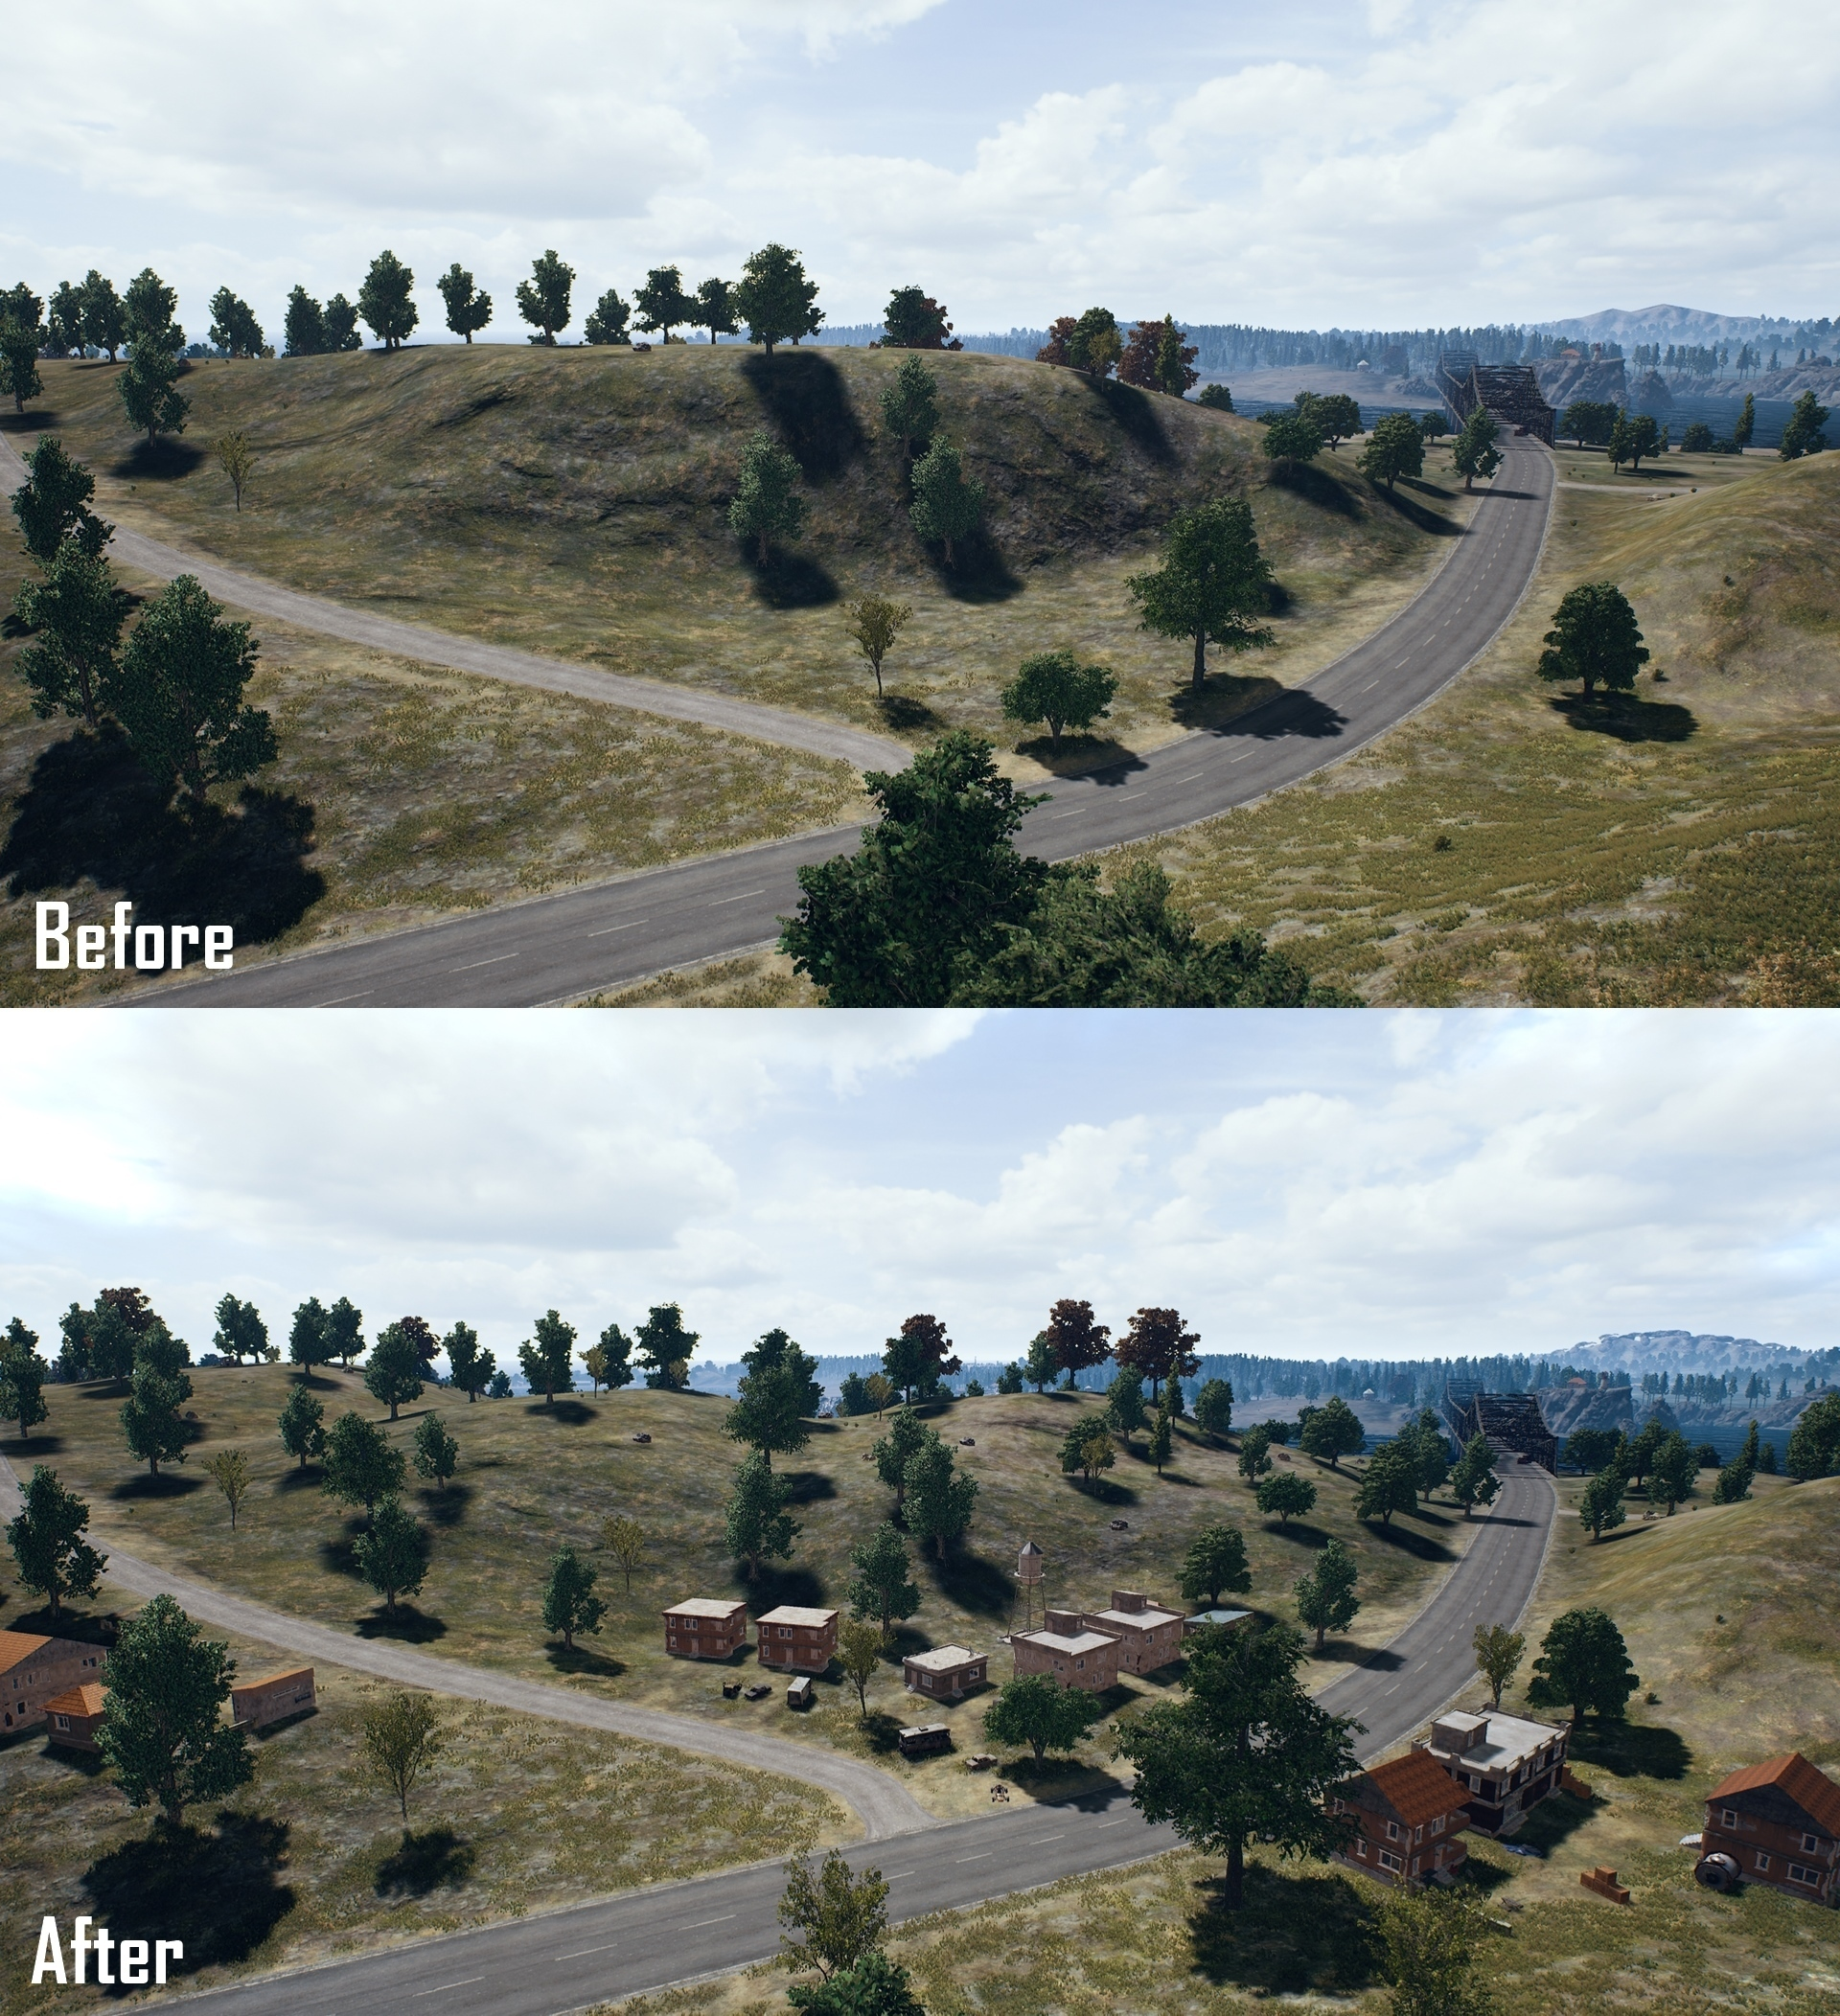 Pictures of PUBG maps Erangel and Miramar get landscape changes 1 1 PUBG